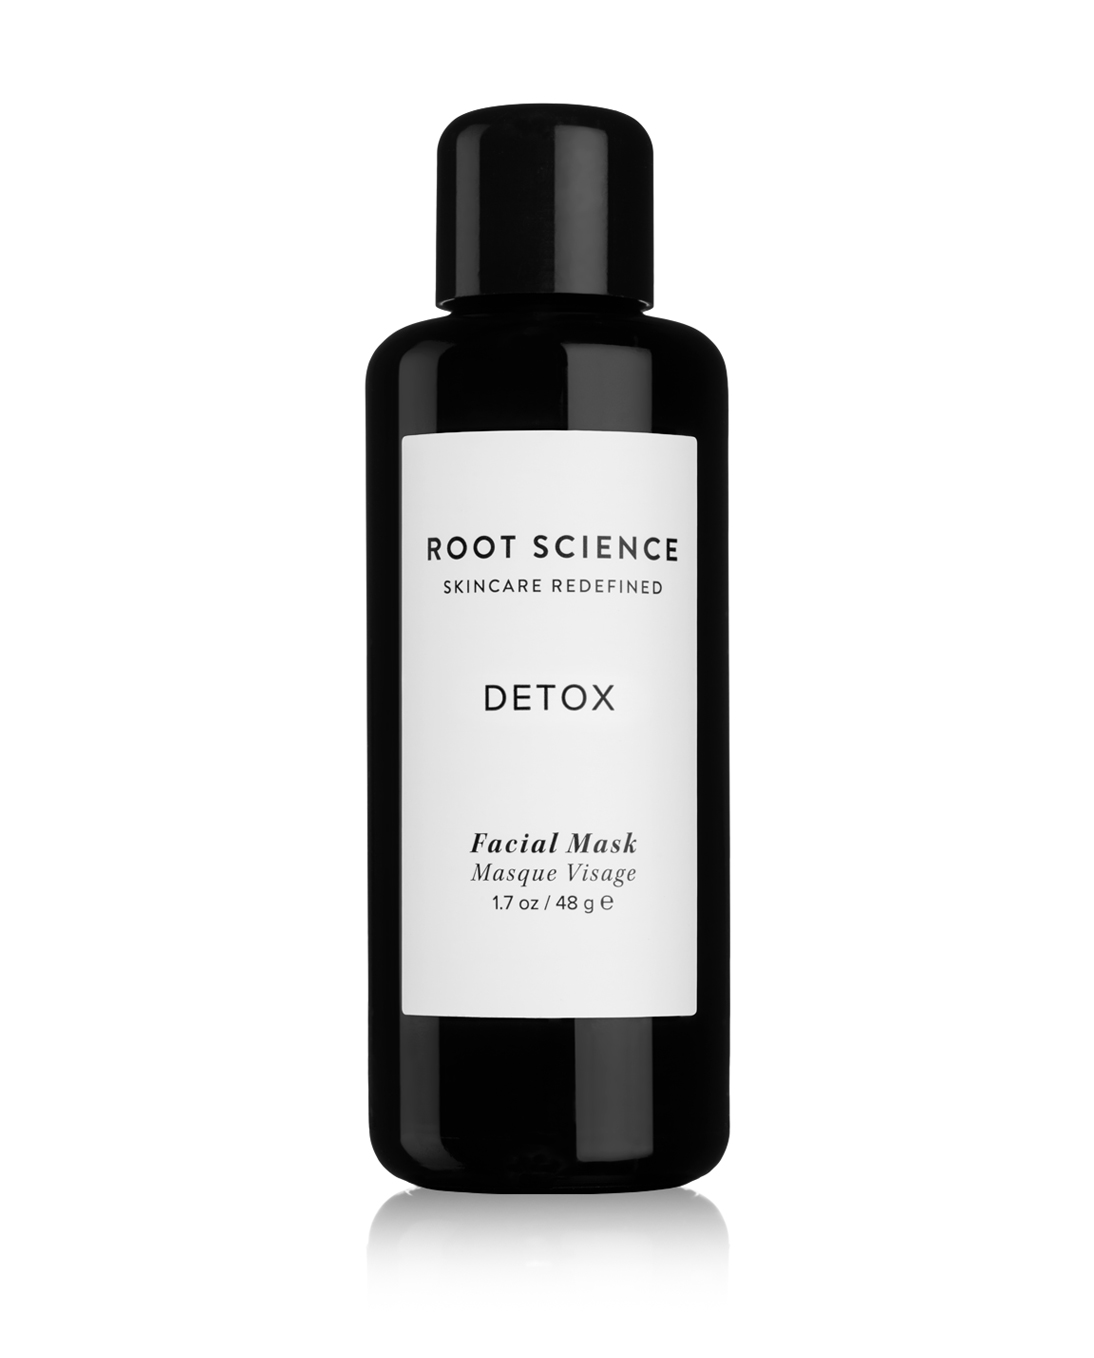 Root Science Detox Facial Mask